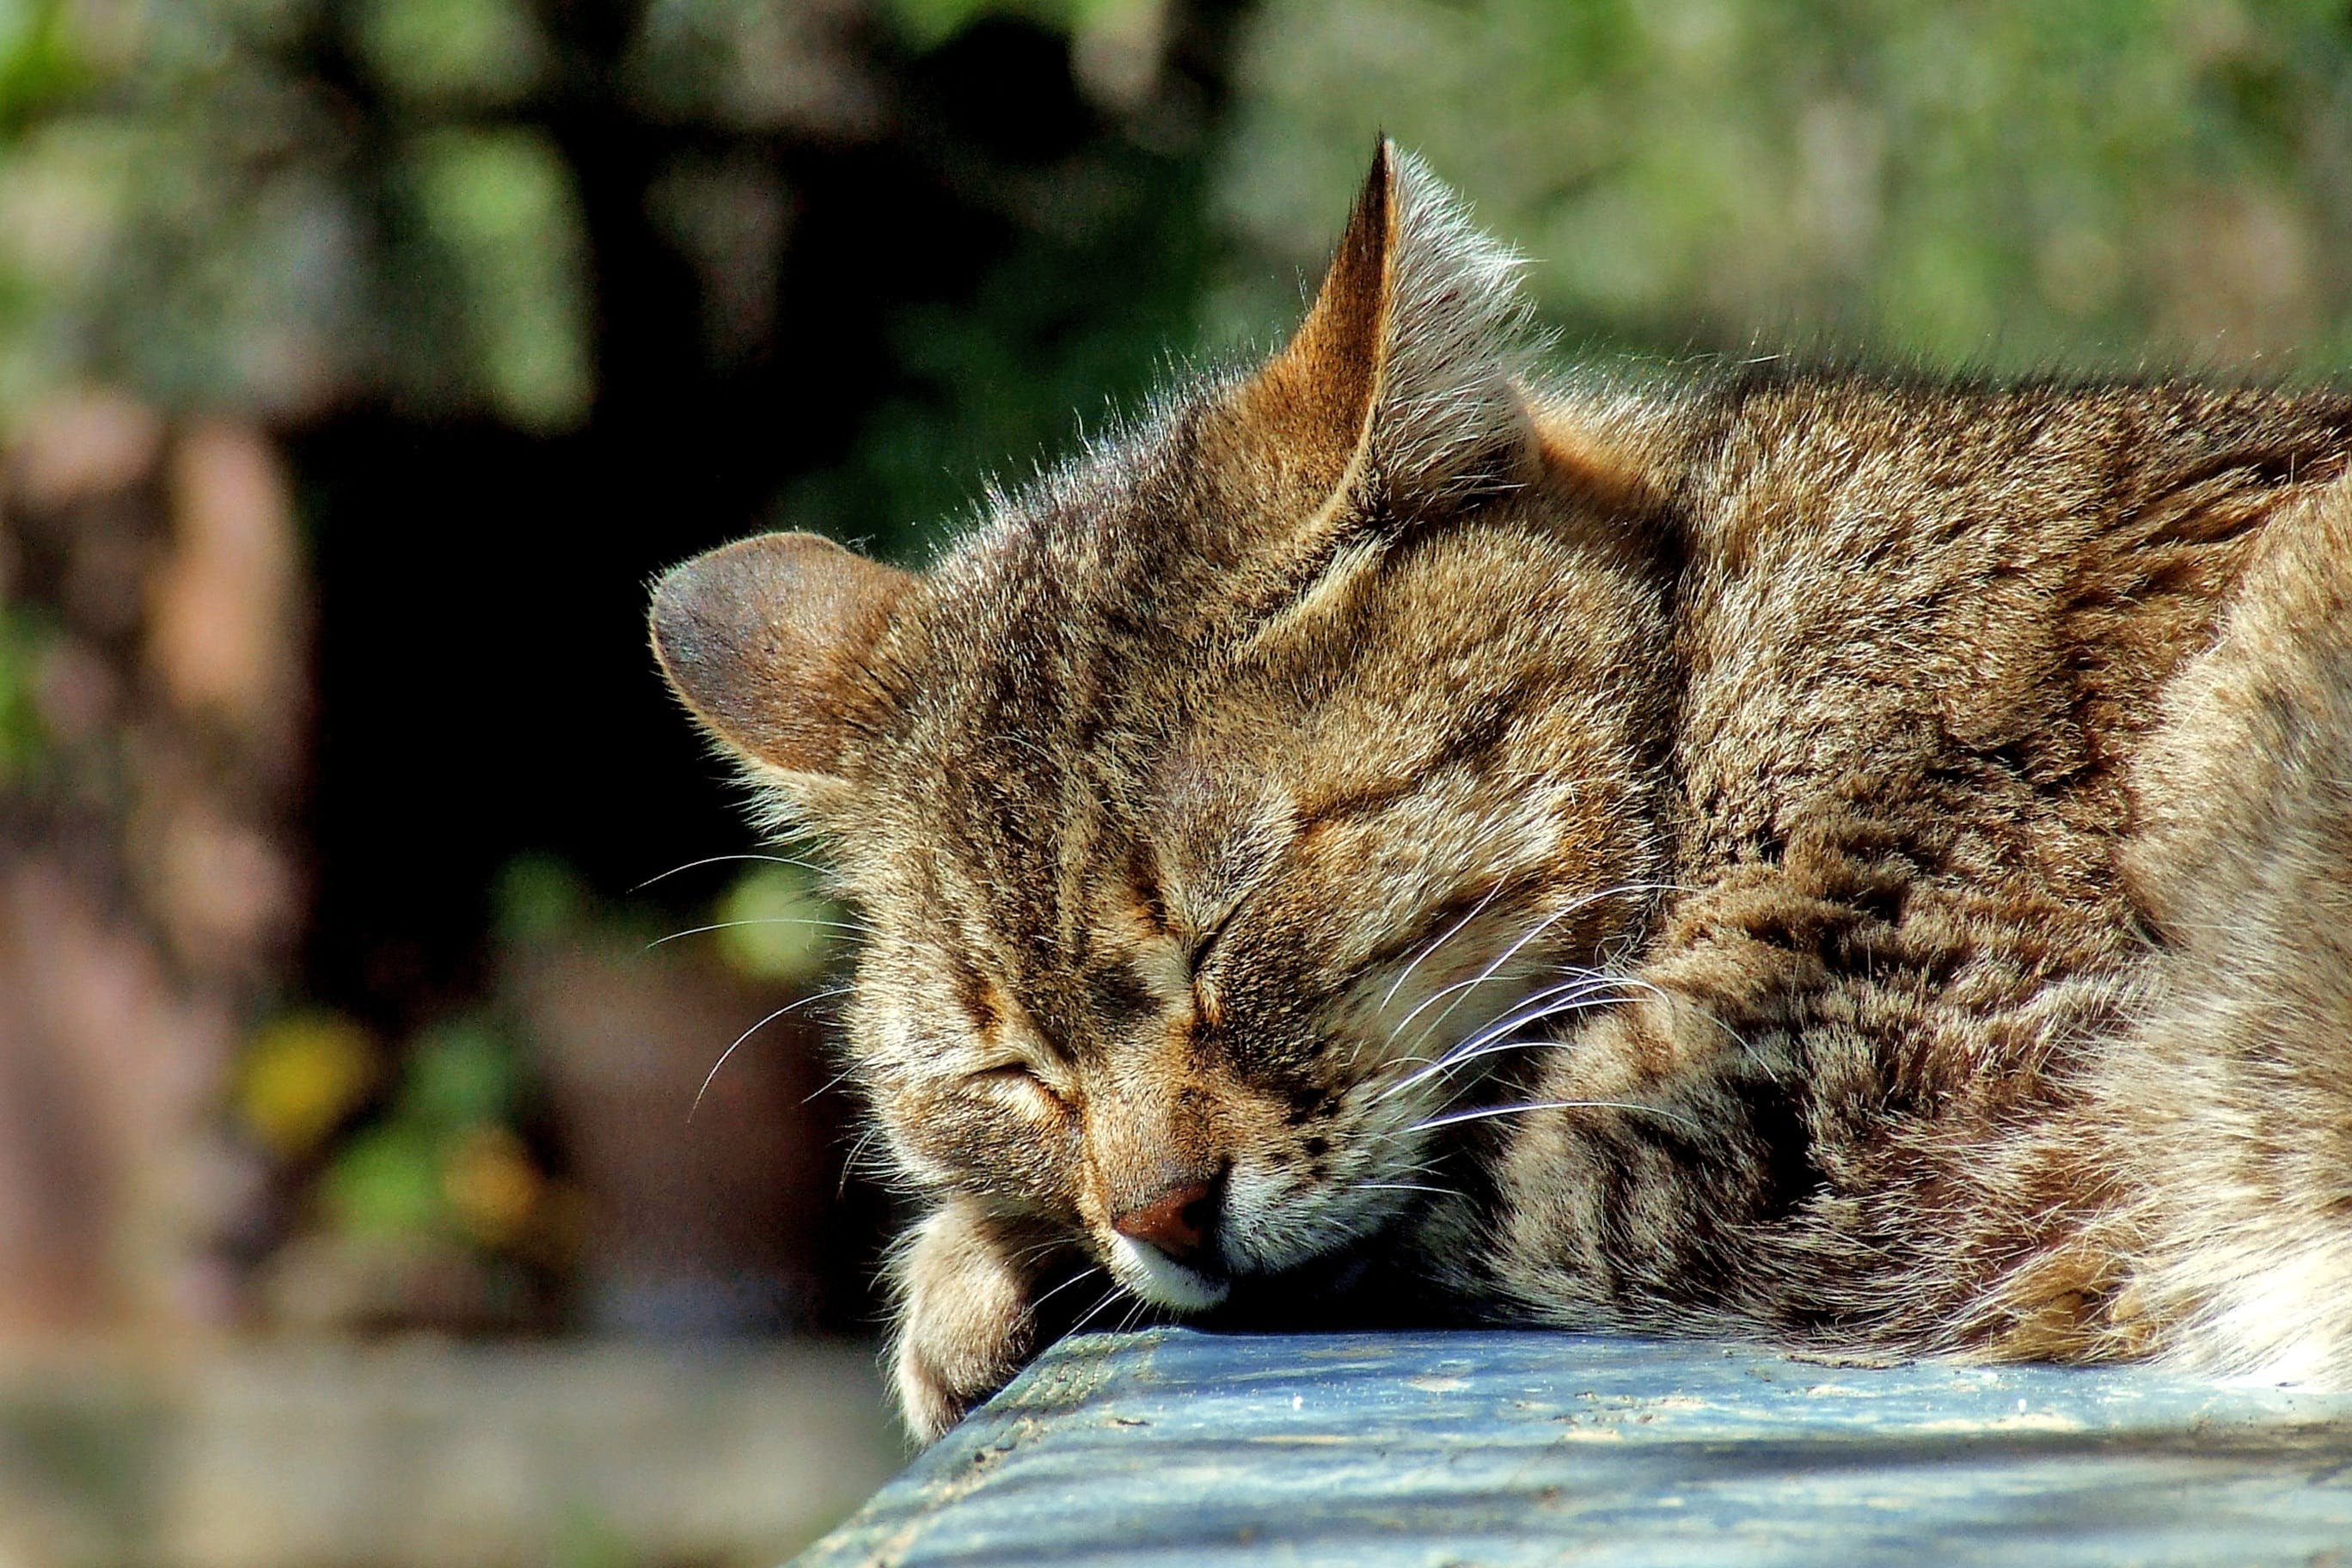 Brown Tabby Sleeping on Black Surface Outdoor